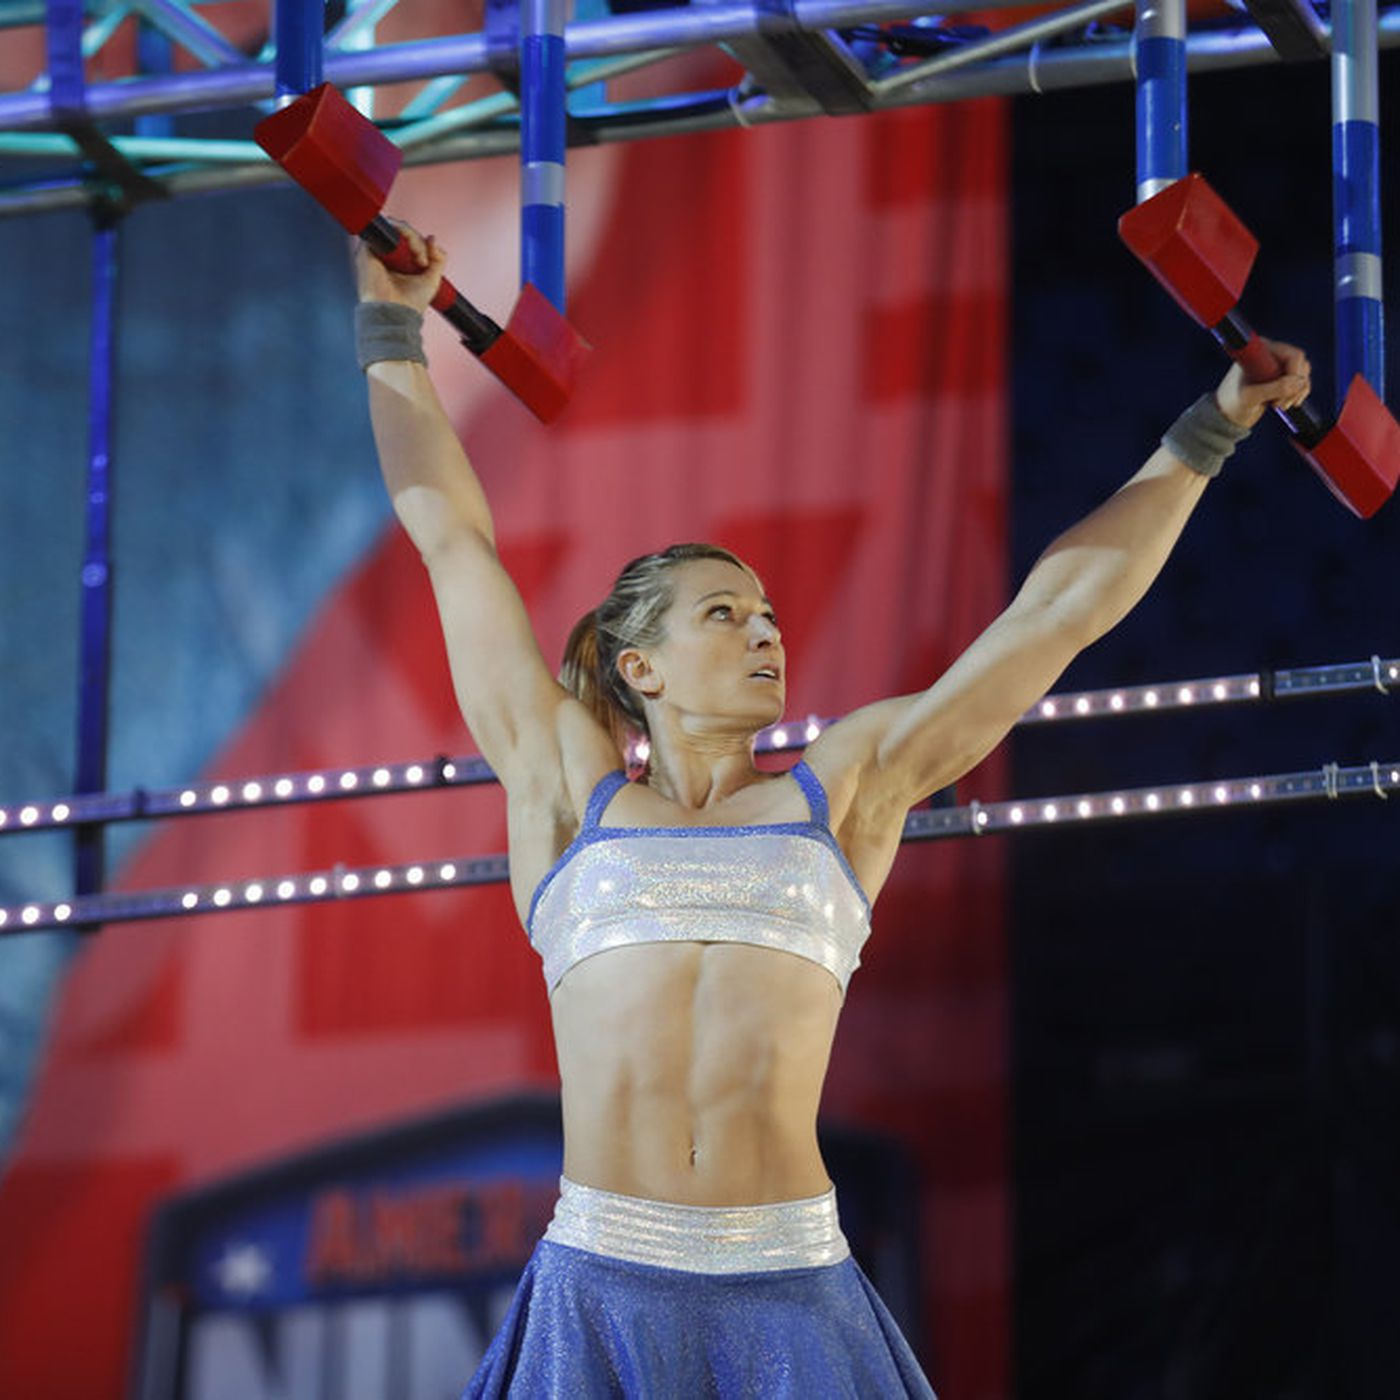 American Ninja Warrior season 11: Seattle/Tacoma City Finals recap